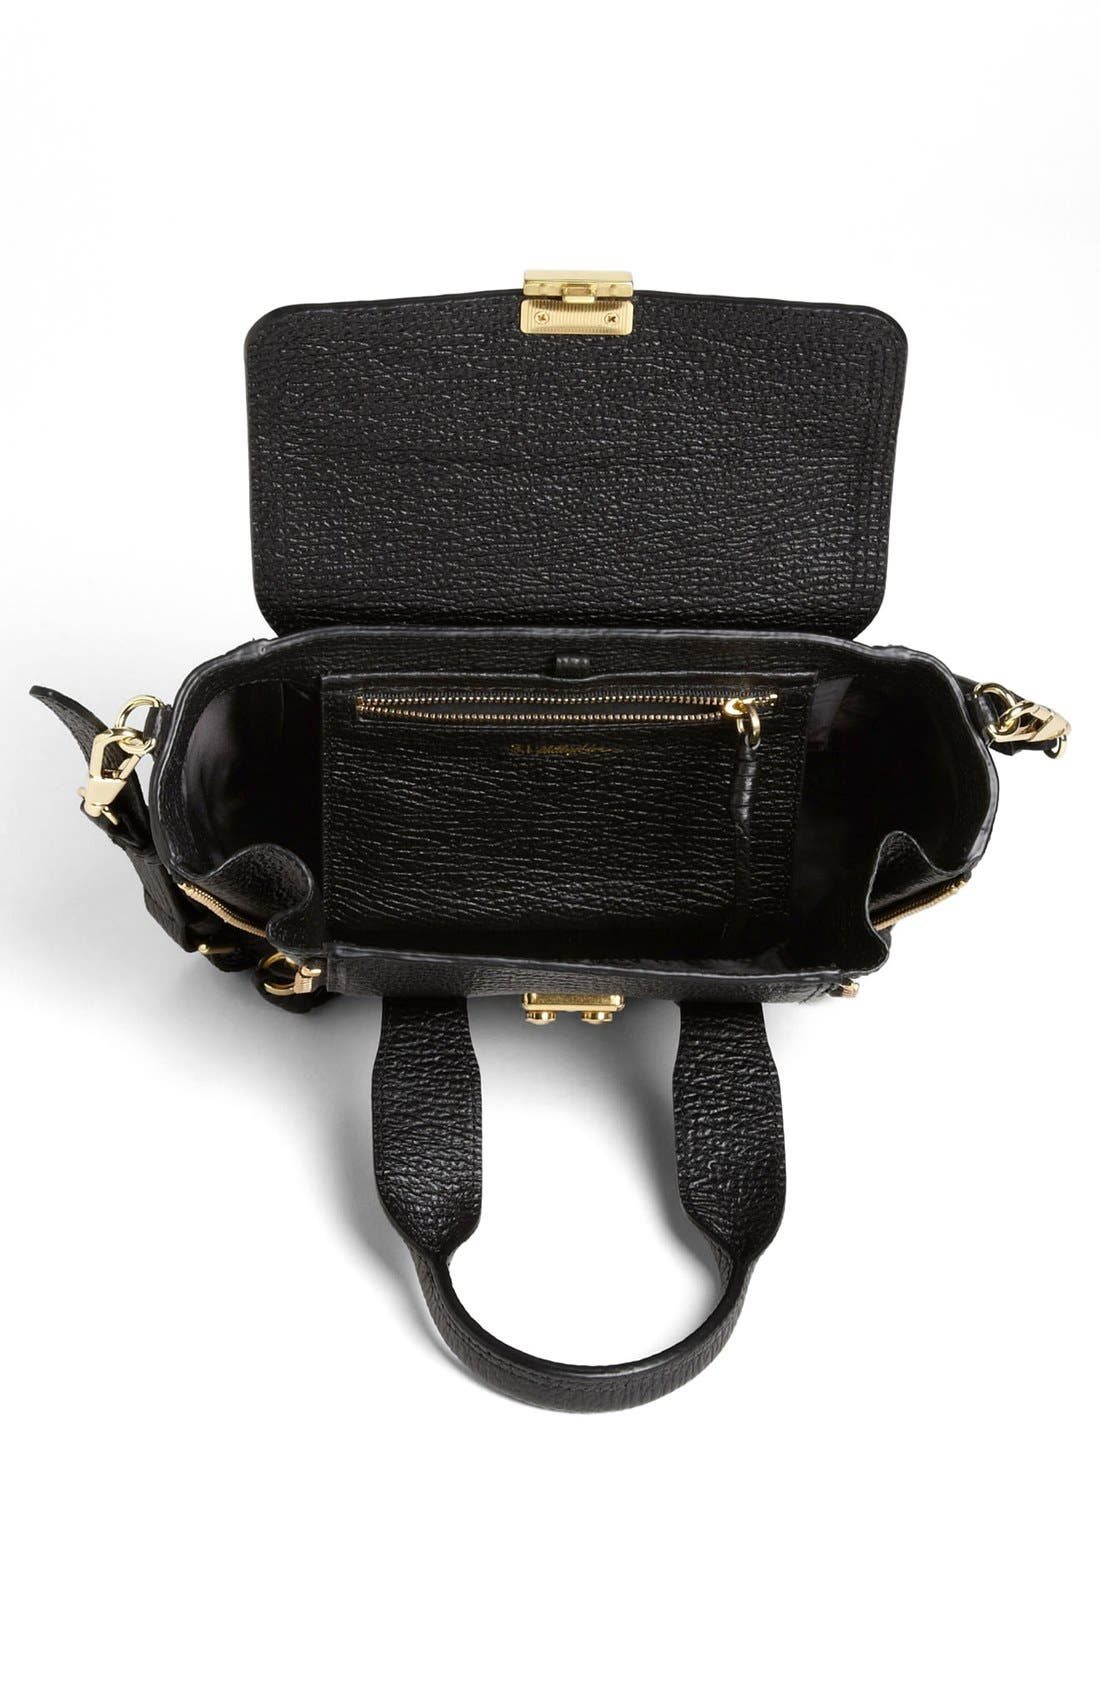 'Mini Pashli' Leather Satchel,                             Alternate thumbnail 4, color,                             BLACK/ GOLD HDWR